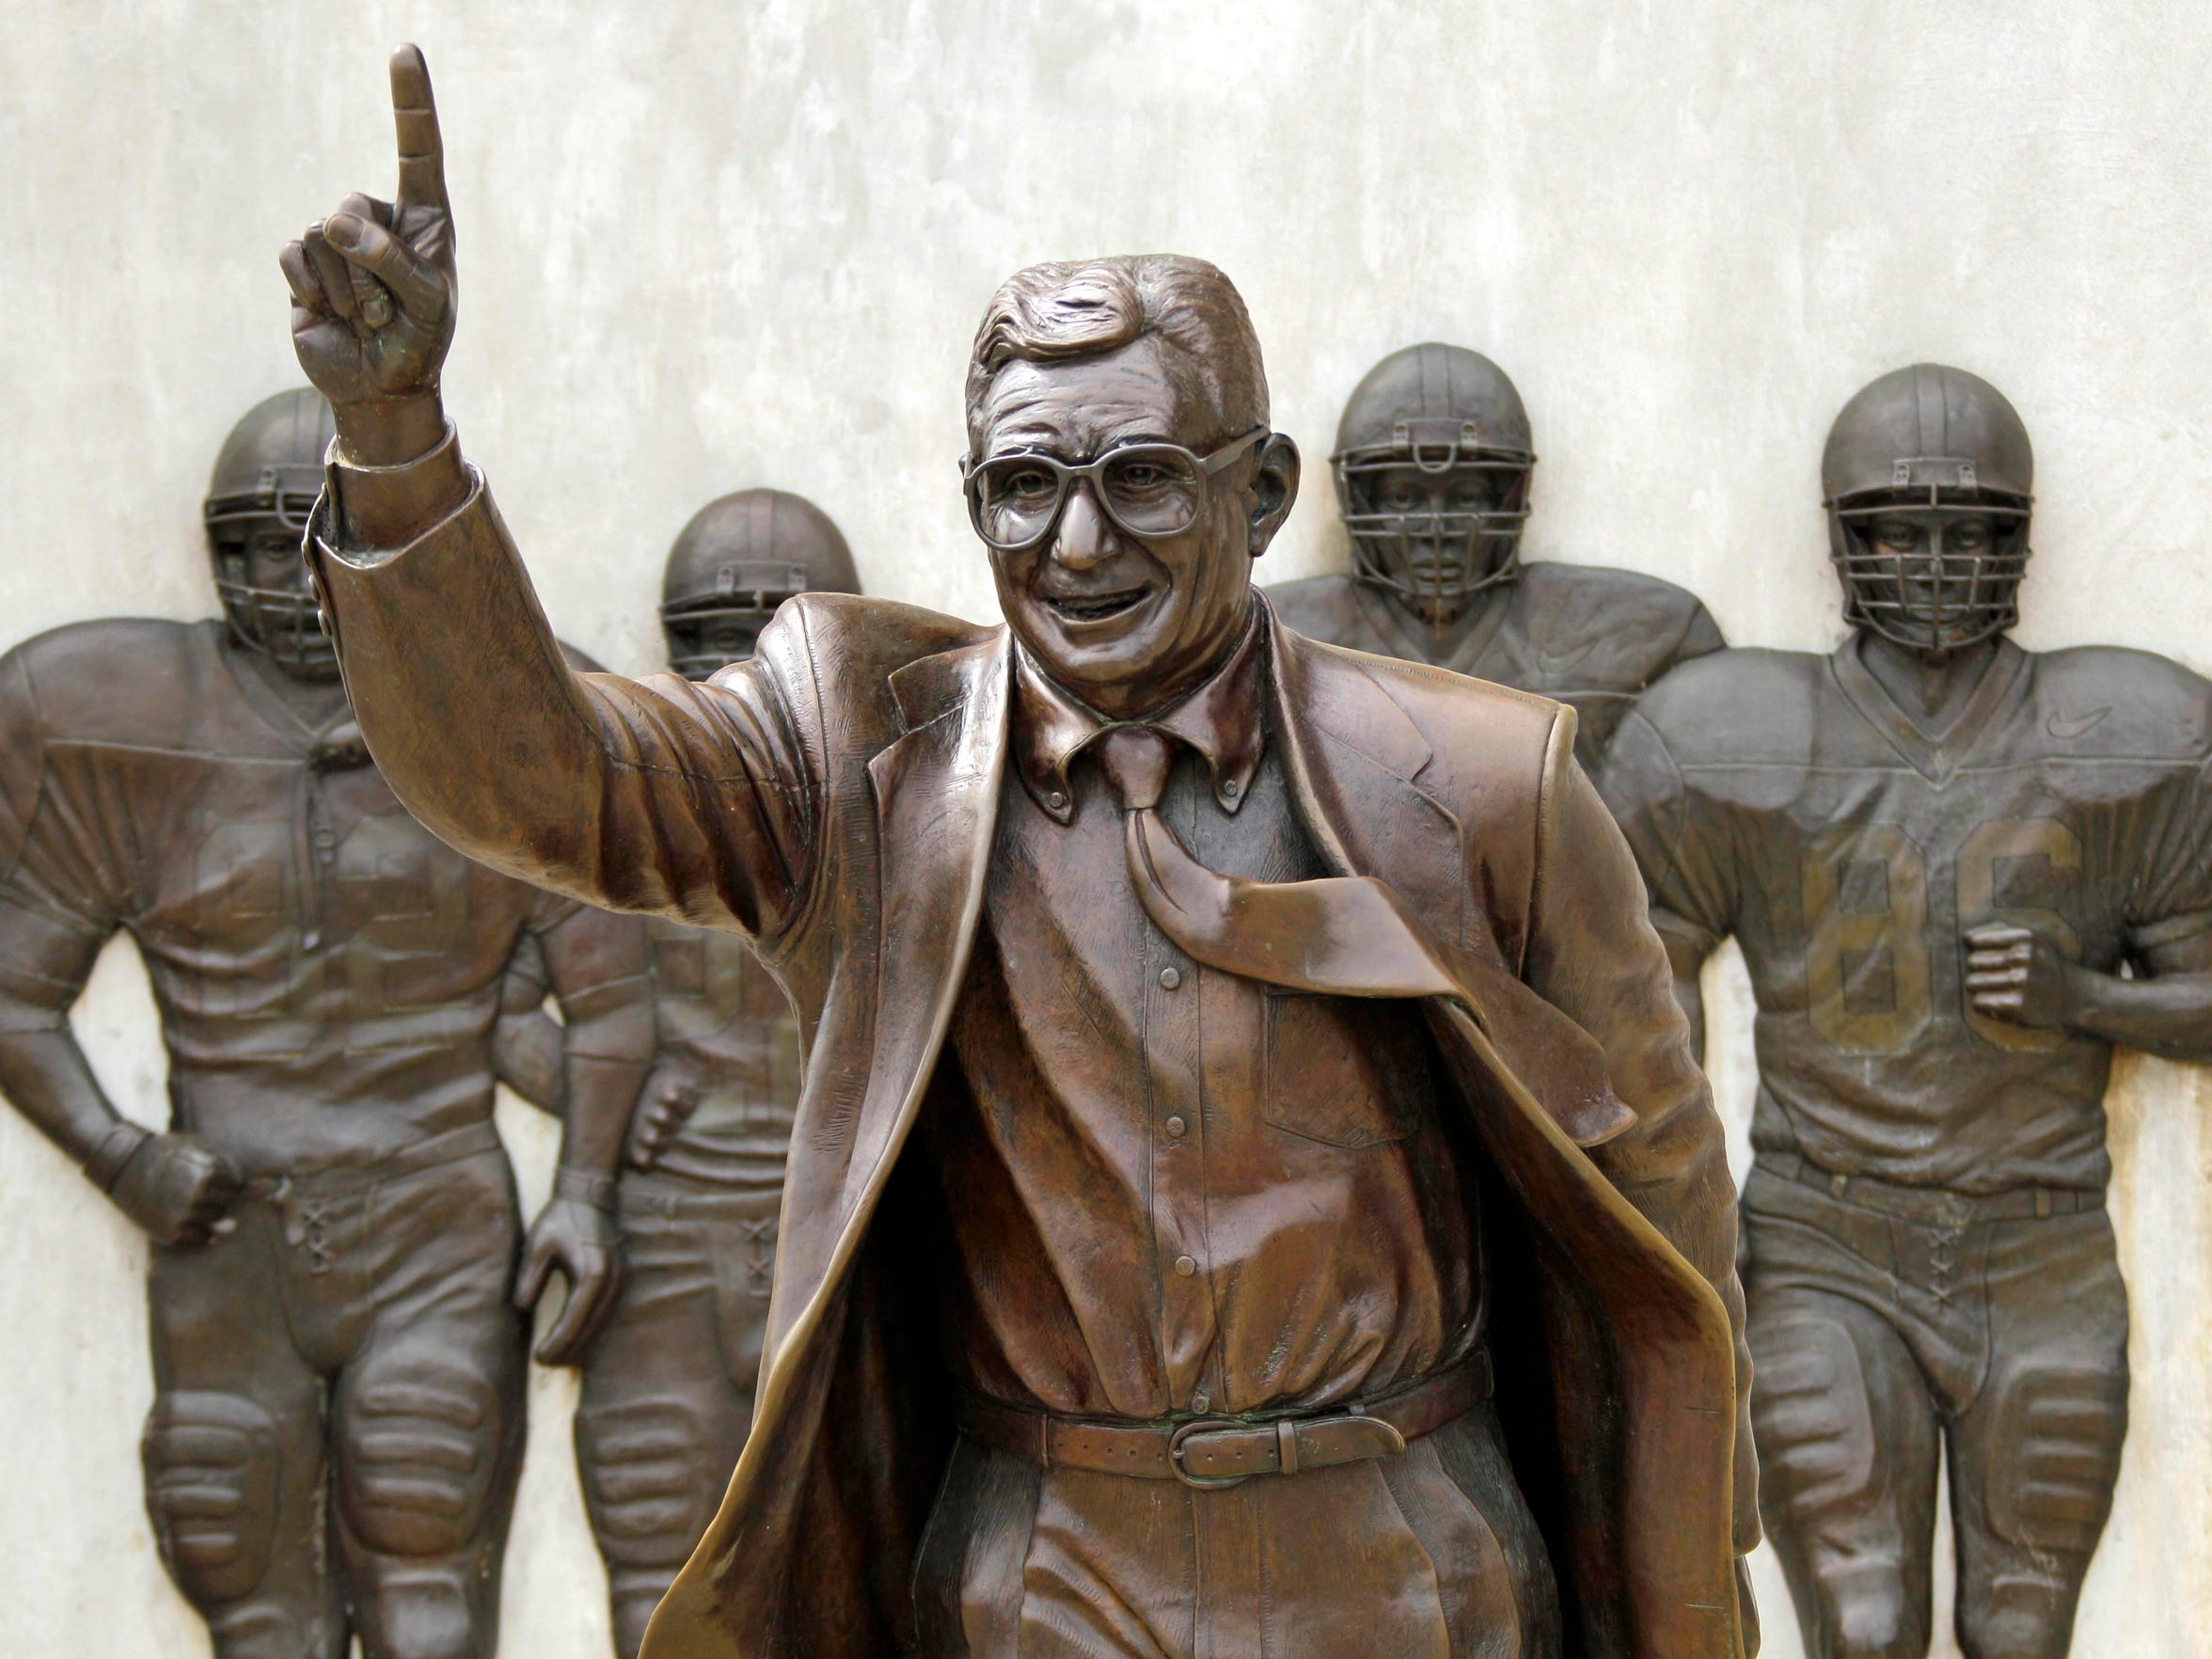 A statue of Joe Paterno has been removed from campus. His 110 wins that were vacated in 2012 could be restored as part of settlement talks in a lawsuit.